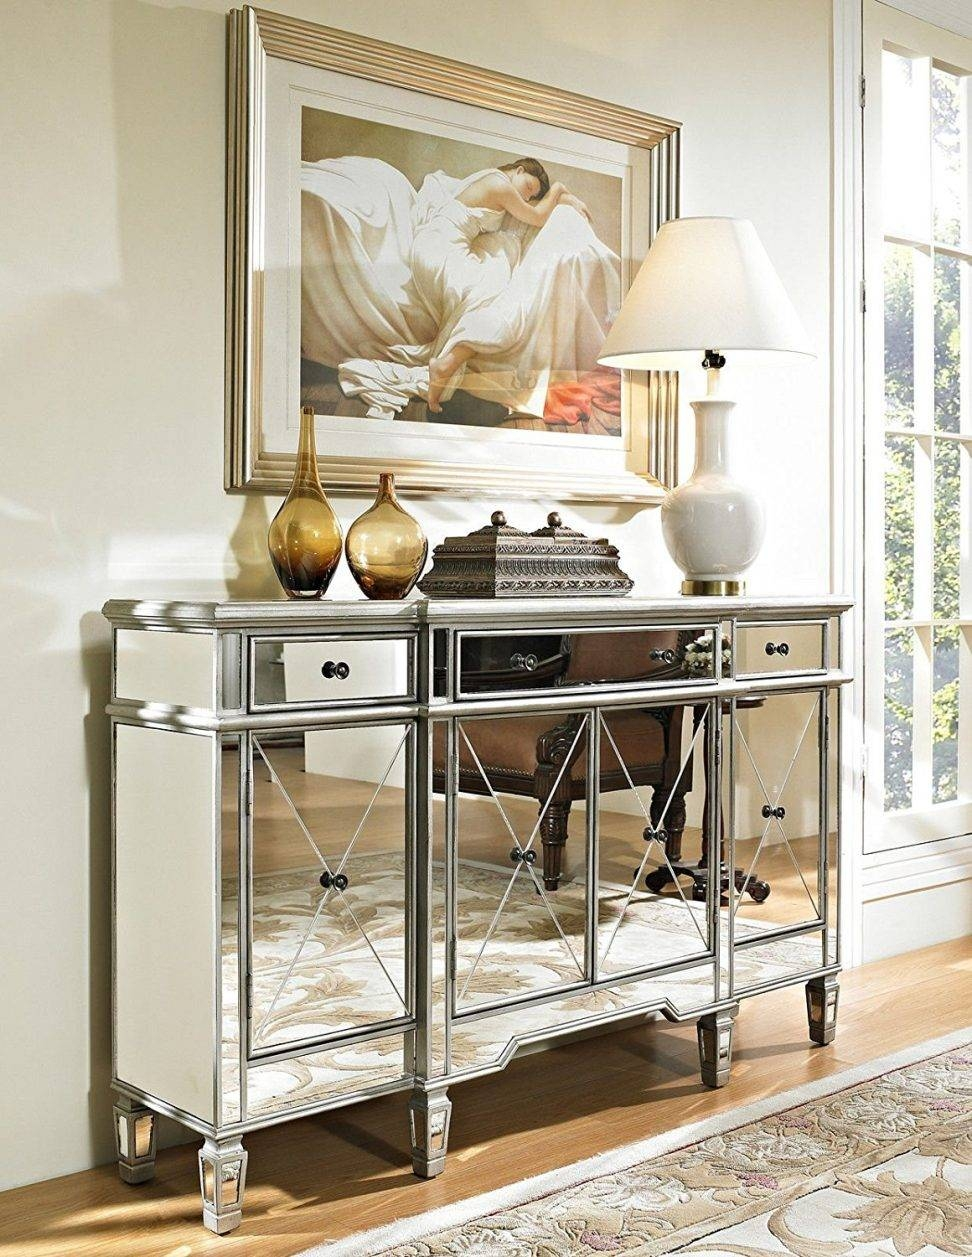 Home Design : Stunning Mirror Tv Stand 816Inc1Nvwl Sl1500 Home pertaining to Mirrored Tv Stands (Image 4 of 15)